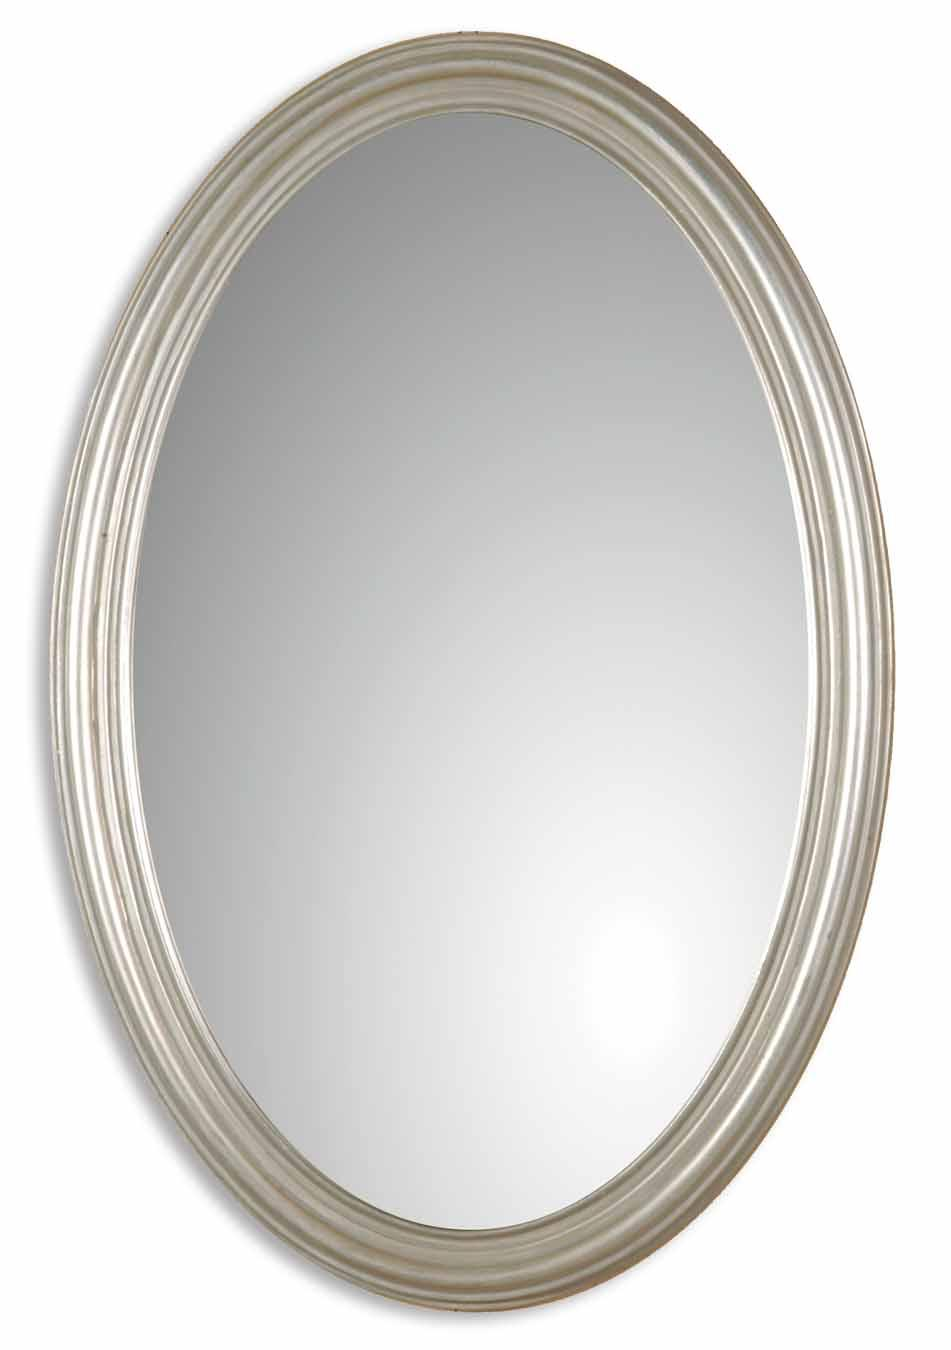 Uttermost Mirrors Franklin Oval Silver U - Item Number: 08601 P